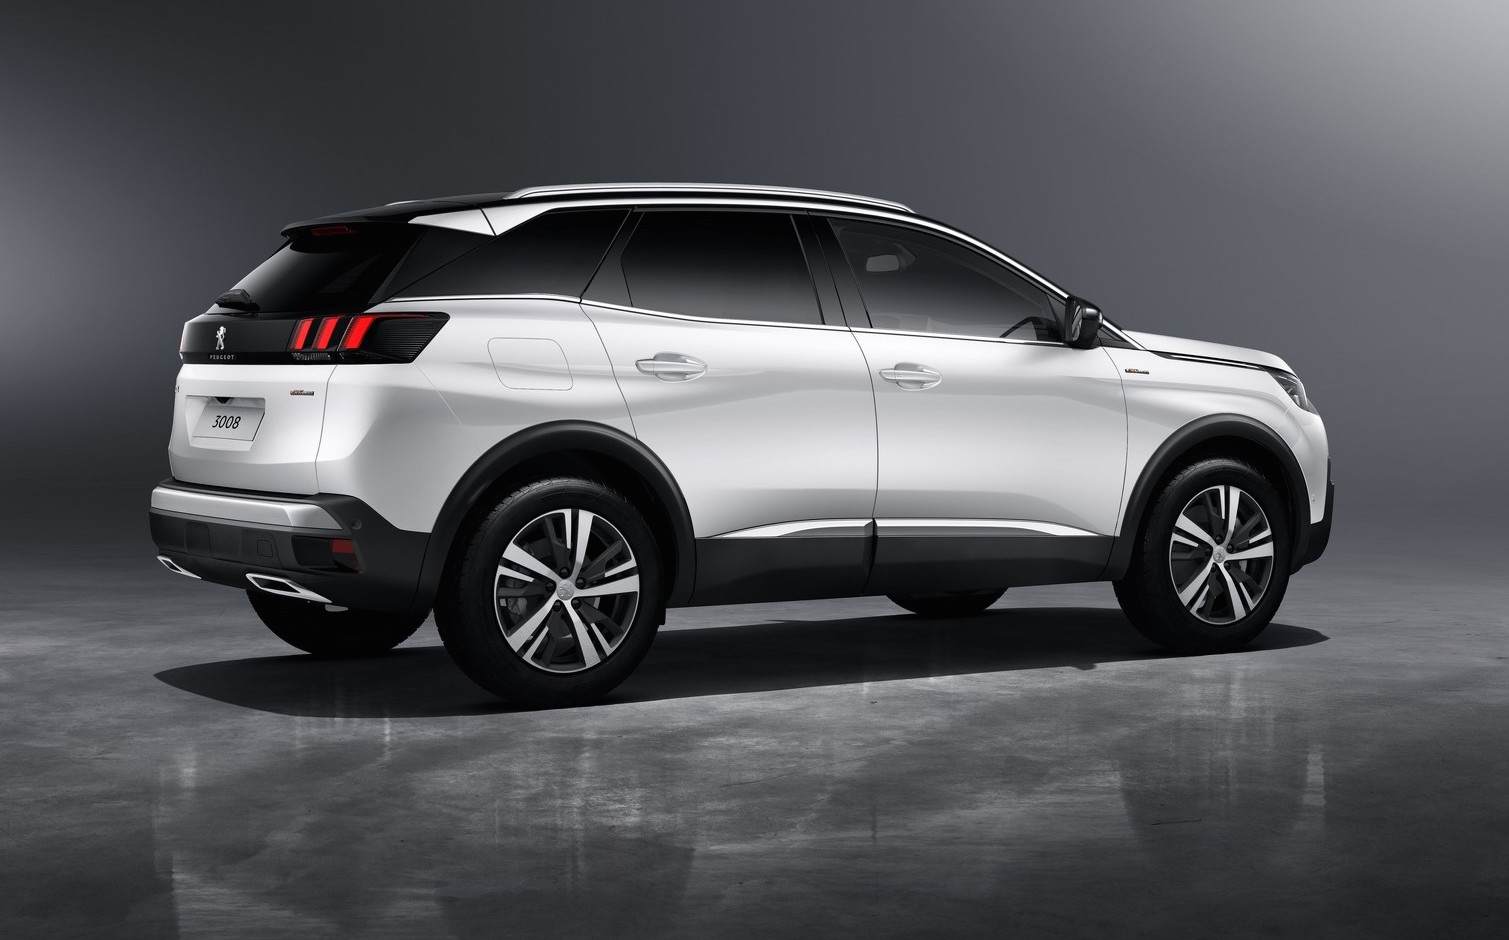 5 Interesting Facts About Peugeot SUV's